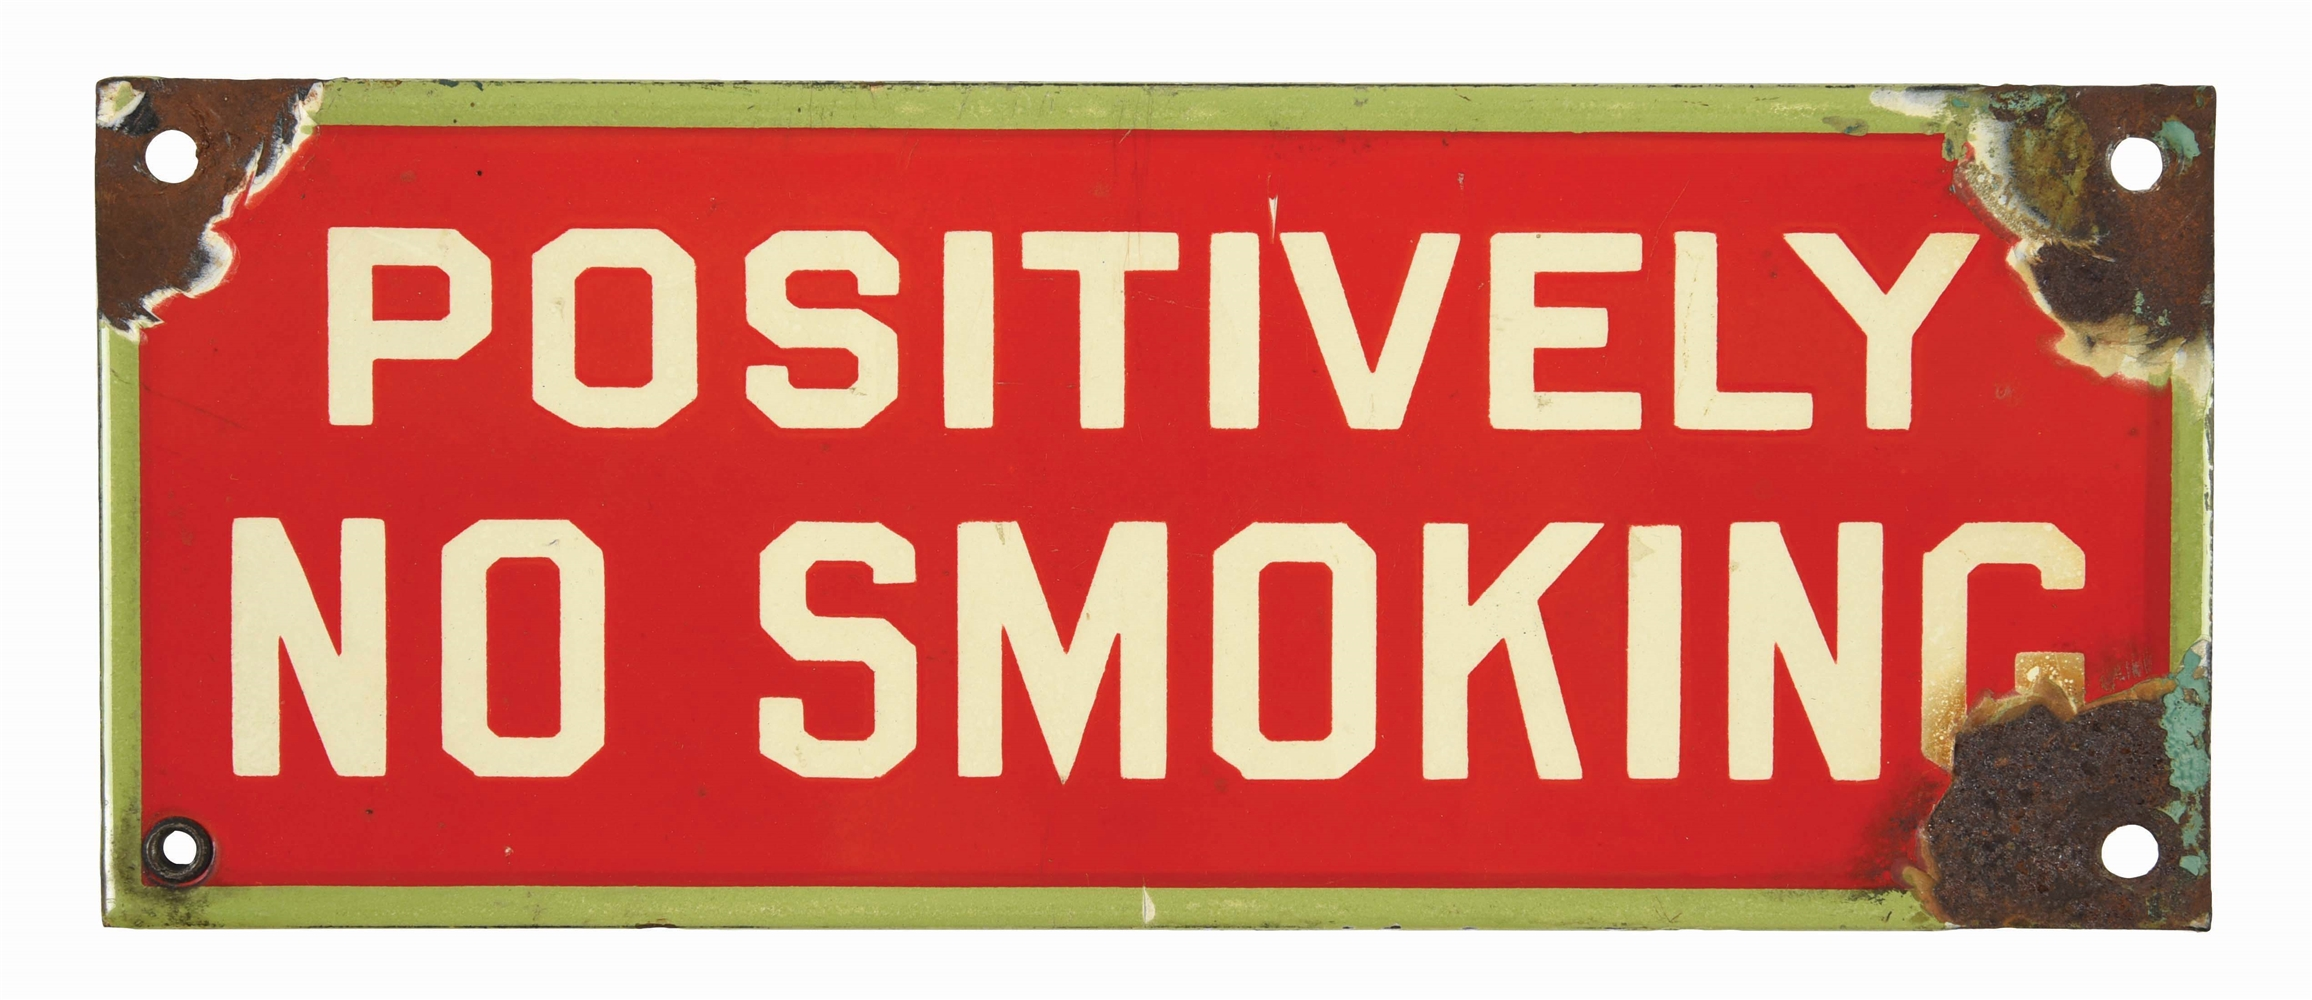 RARE ASSOCIATED GASOLINE POSITIVELY NO SMOKING PORCELAIN SERVICE STATION SIGN.